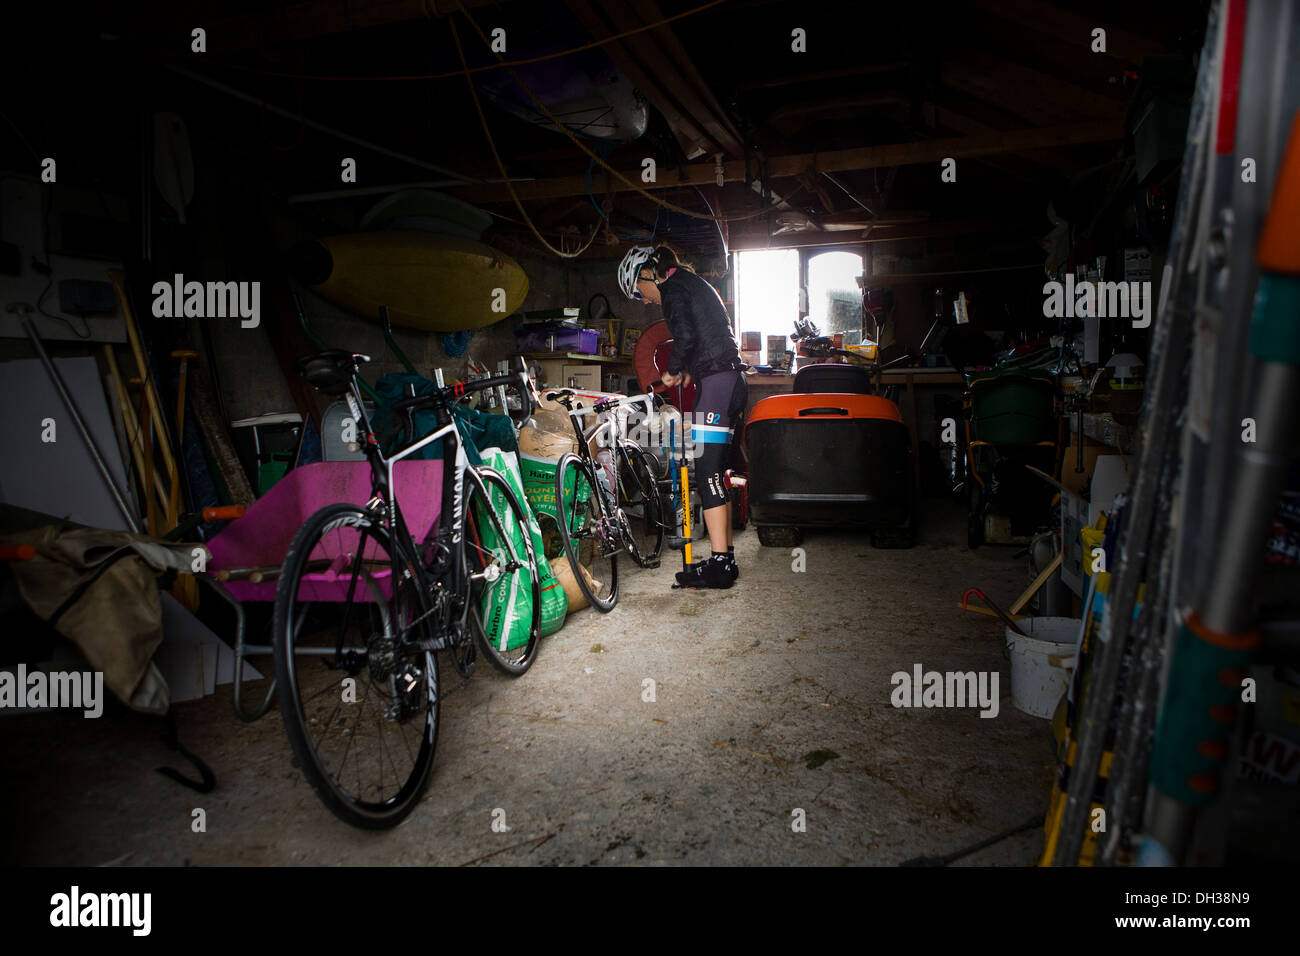 A cyclist stands next to her bicycle in a garage, Scottish Highlands, Scotland, United Kingdom - Stock Image